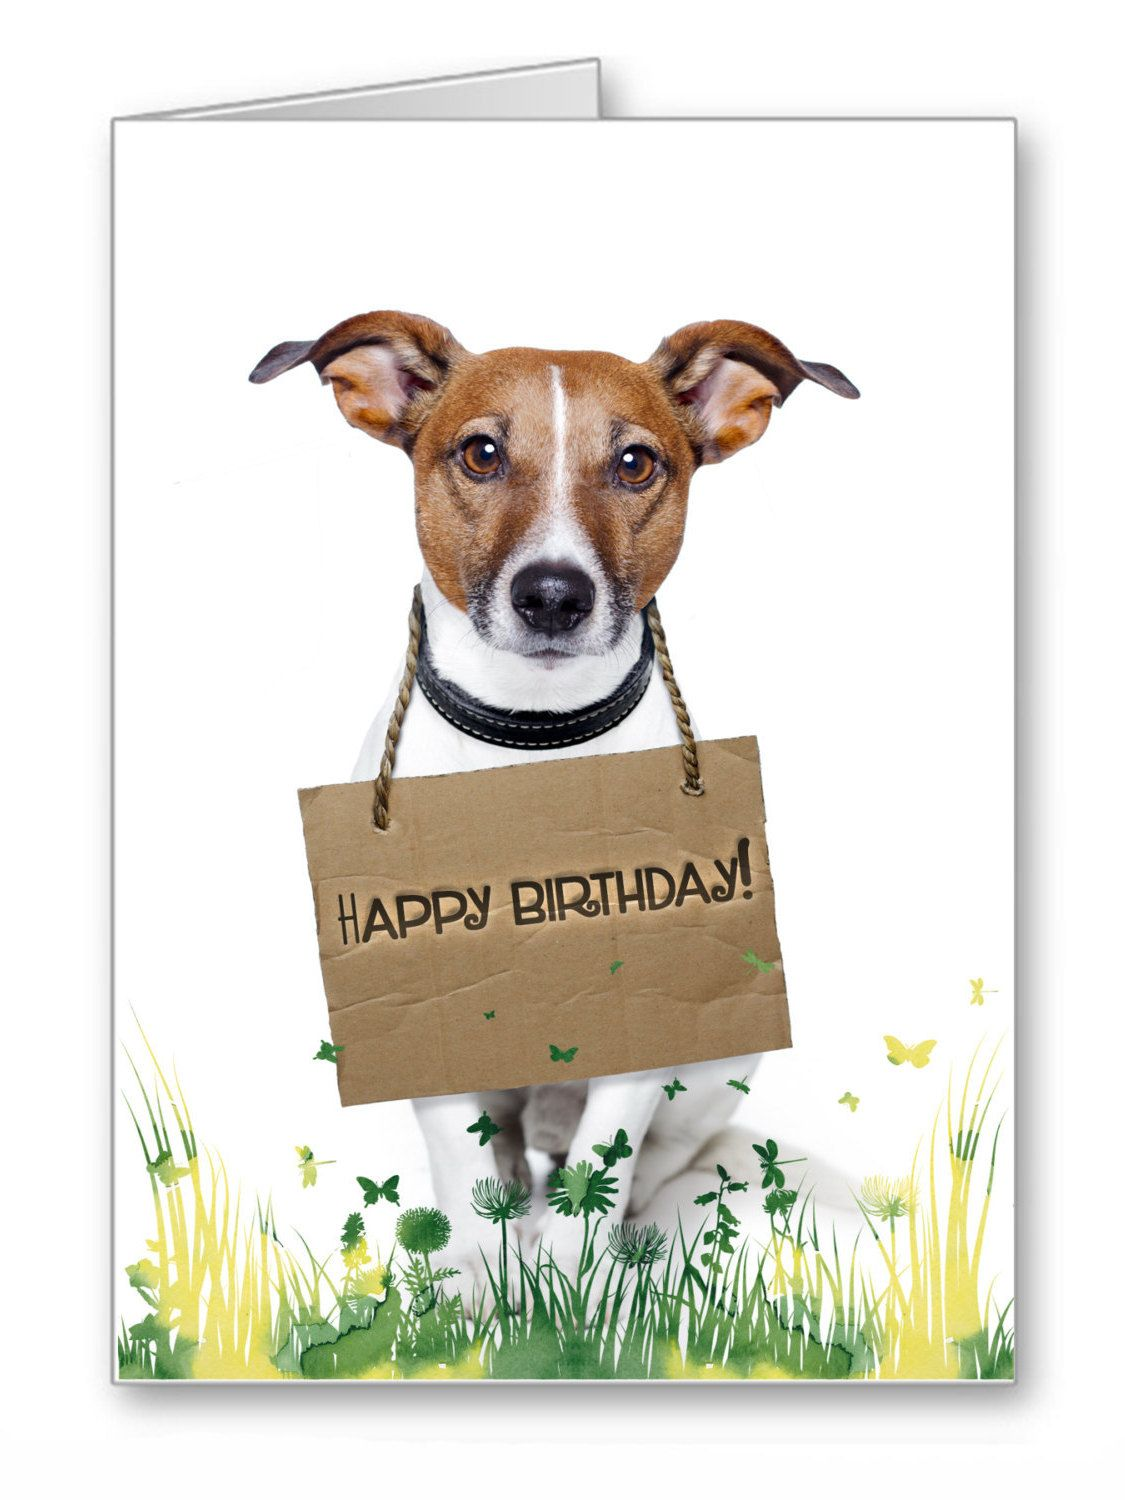 Happy Birthday Cards With Dogs Funny Pets Happy